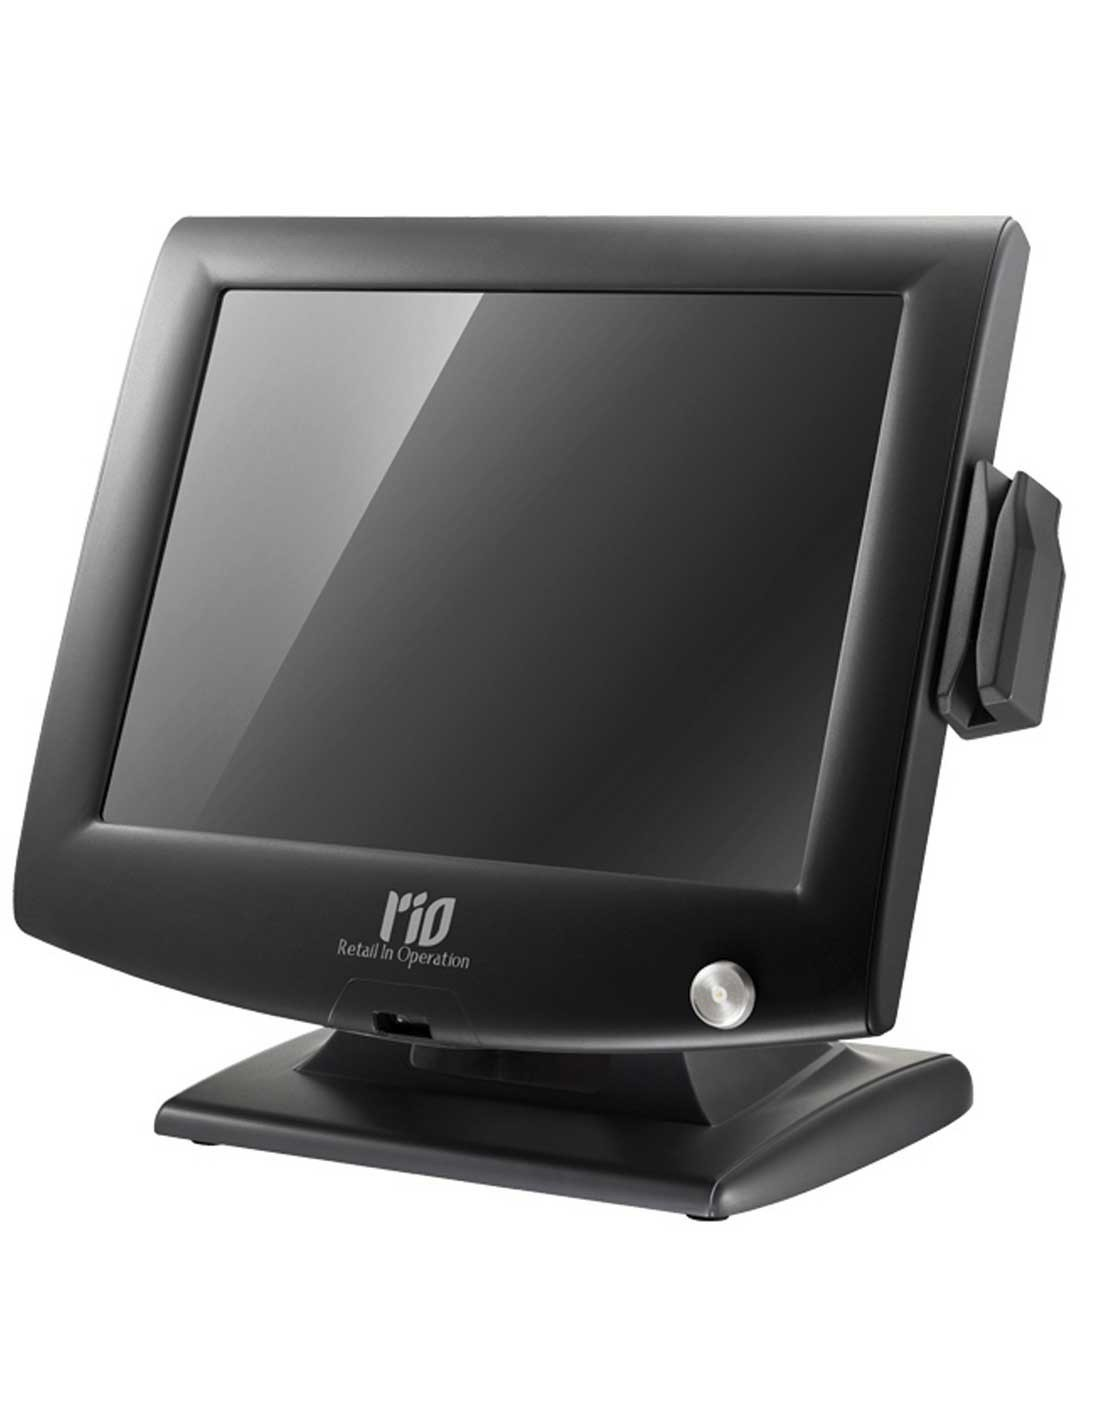 RIO Xander 5 POS Terminal at a Cheap Price and Free Delivery in Dubai UAE